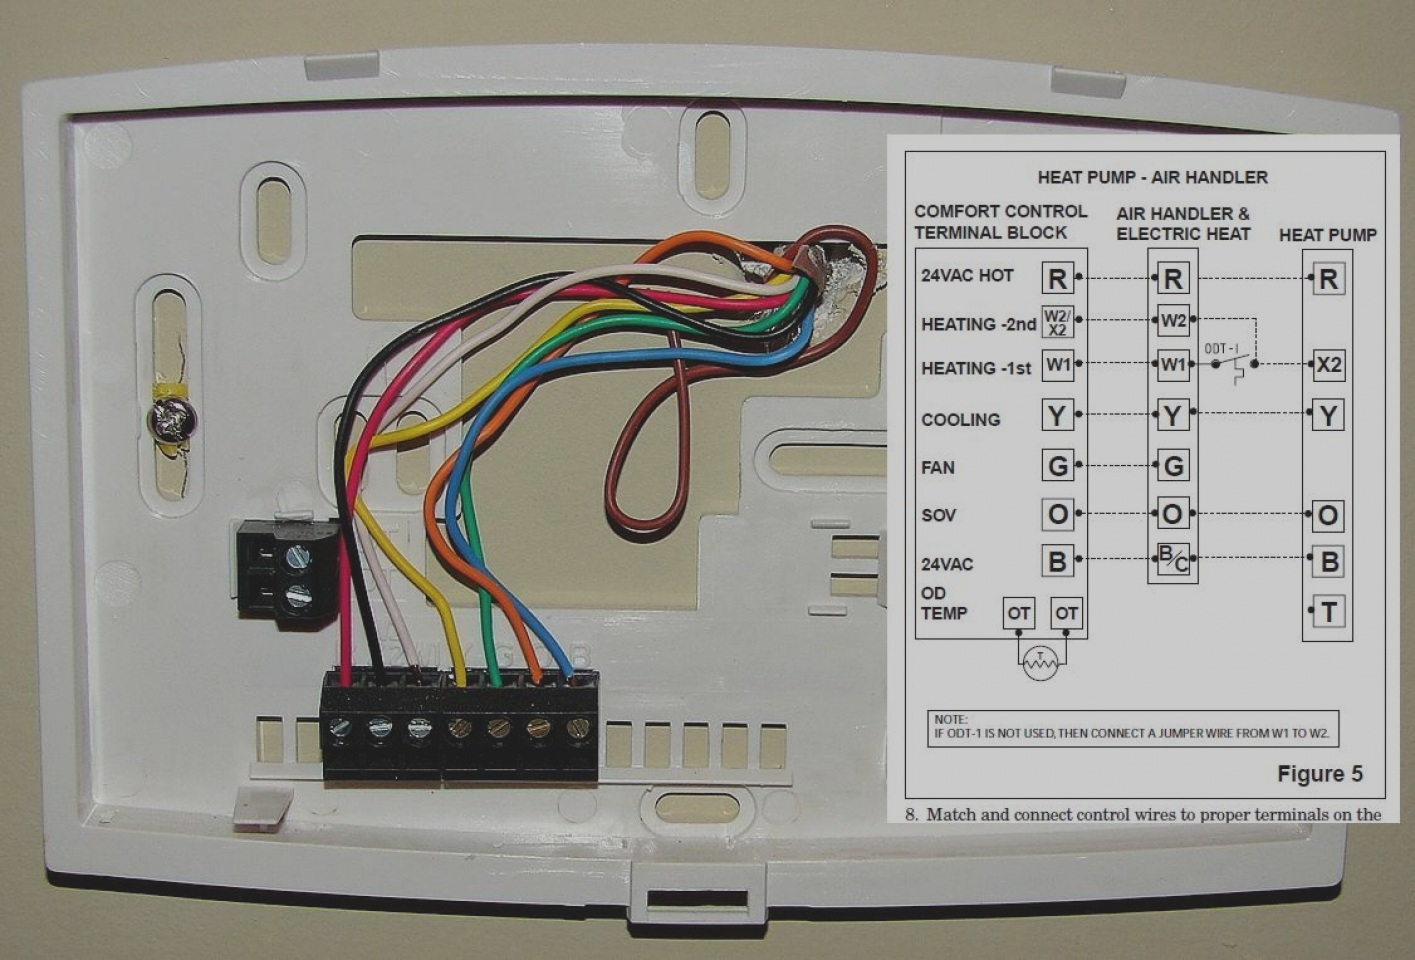 honeywell th5220d1003 wiring diagram Download-Honeywell Th5220d1003 Wiring Diagram 27 New Wiring Diagram for Honeywell thermostat Th5220d1003 Collection 16-e